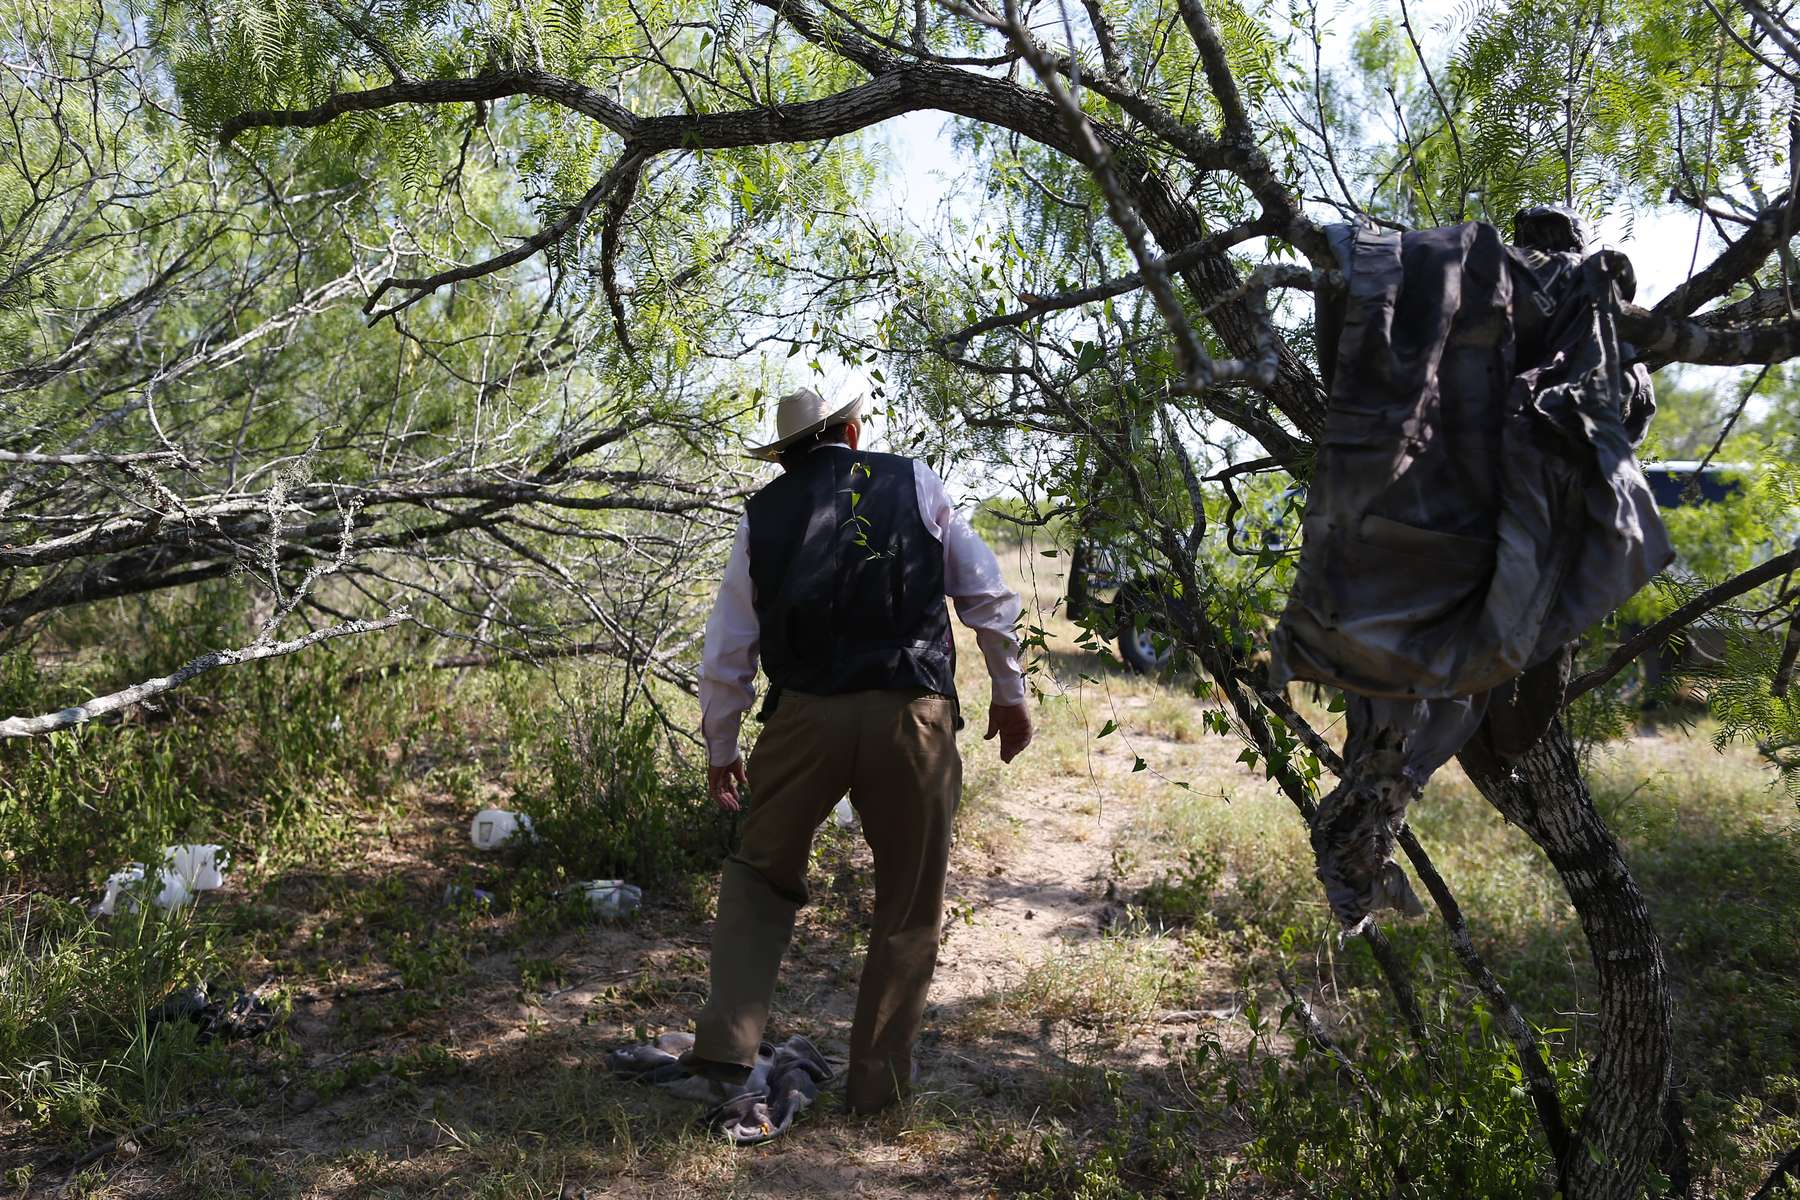 Falfurrias, Texas -  Lavoyger Durham walks through land on the ranch he works where clothing is left behind by migrants in Falfurrias, Texas June 12, 2014.